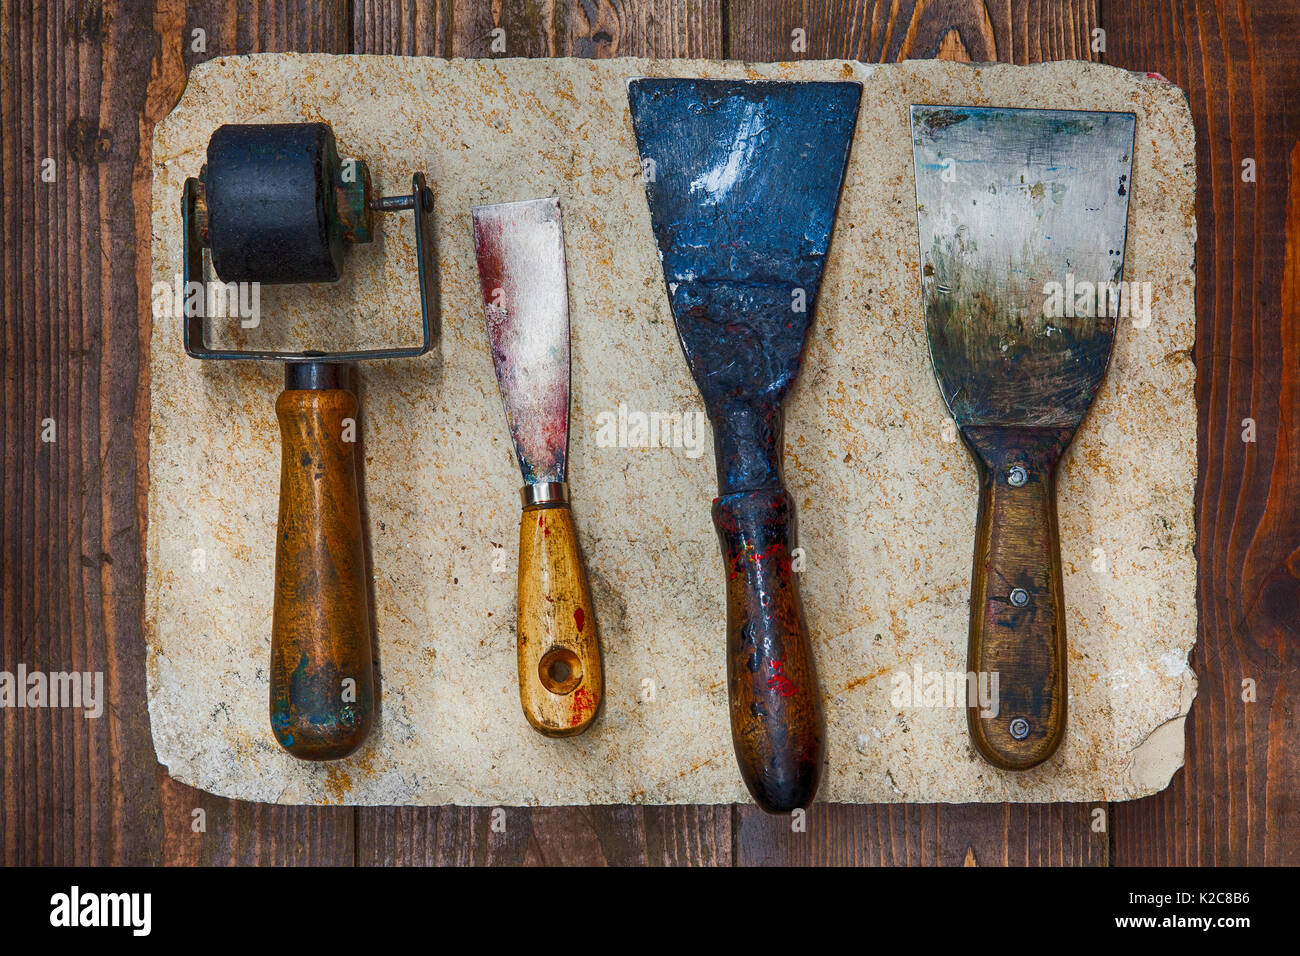 Retro design tools for artist workshop: rubber roller, different size putty knives on stone plate and wooden background. - Stock Image